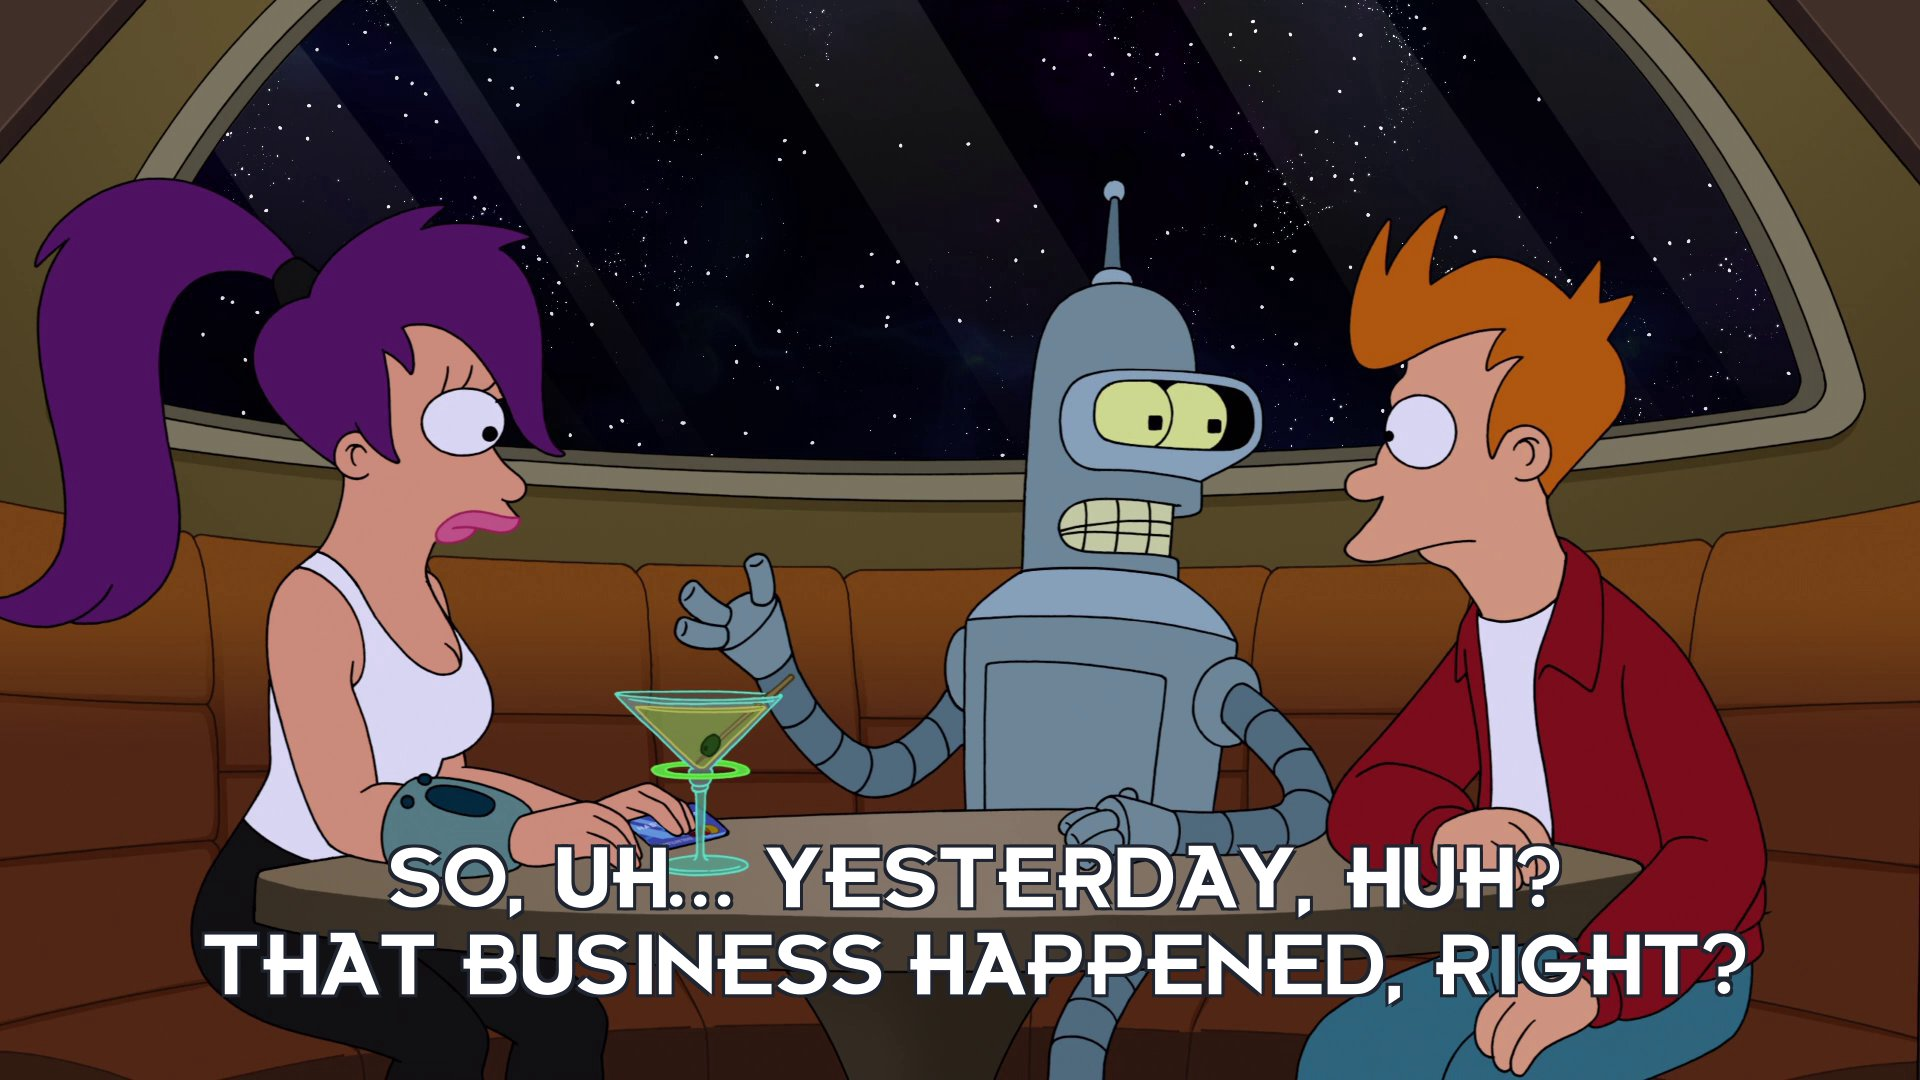 Bender Bending Rodriguez: So, uh... yesterday, huh? That business happened, right?